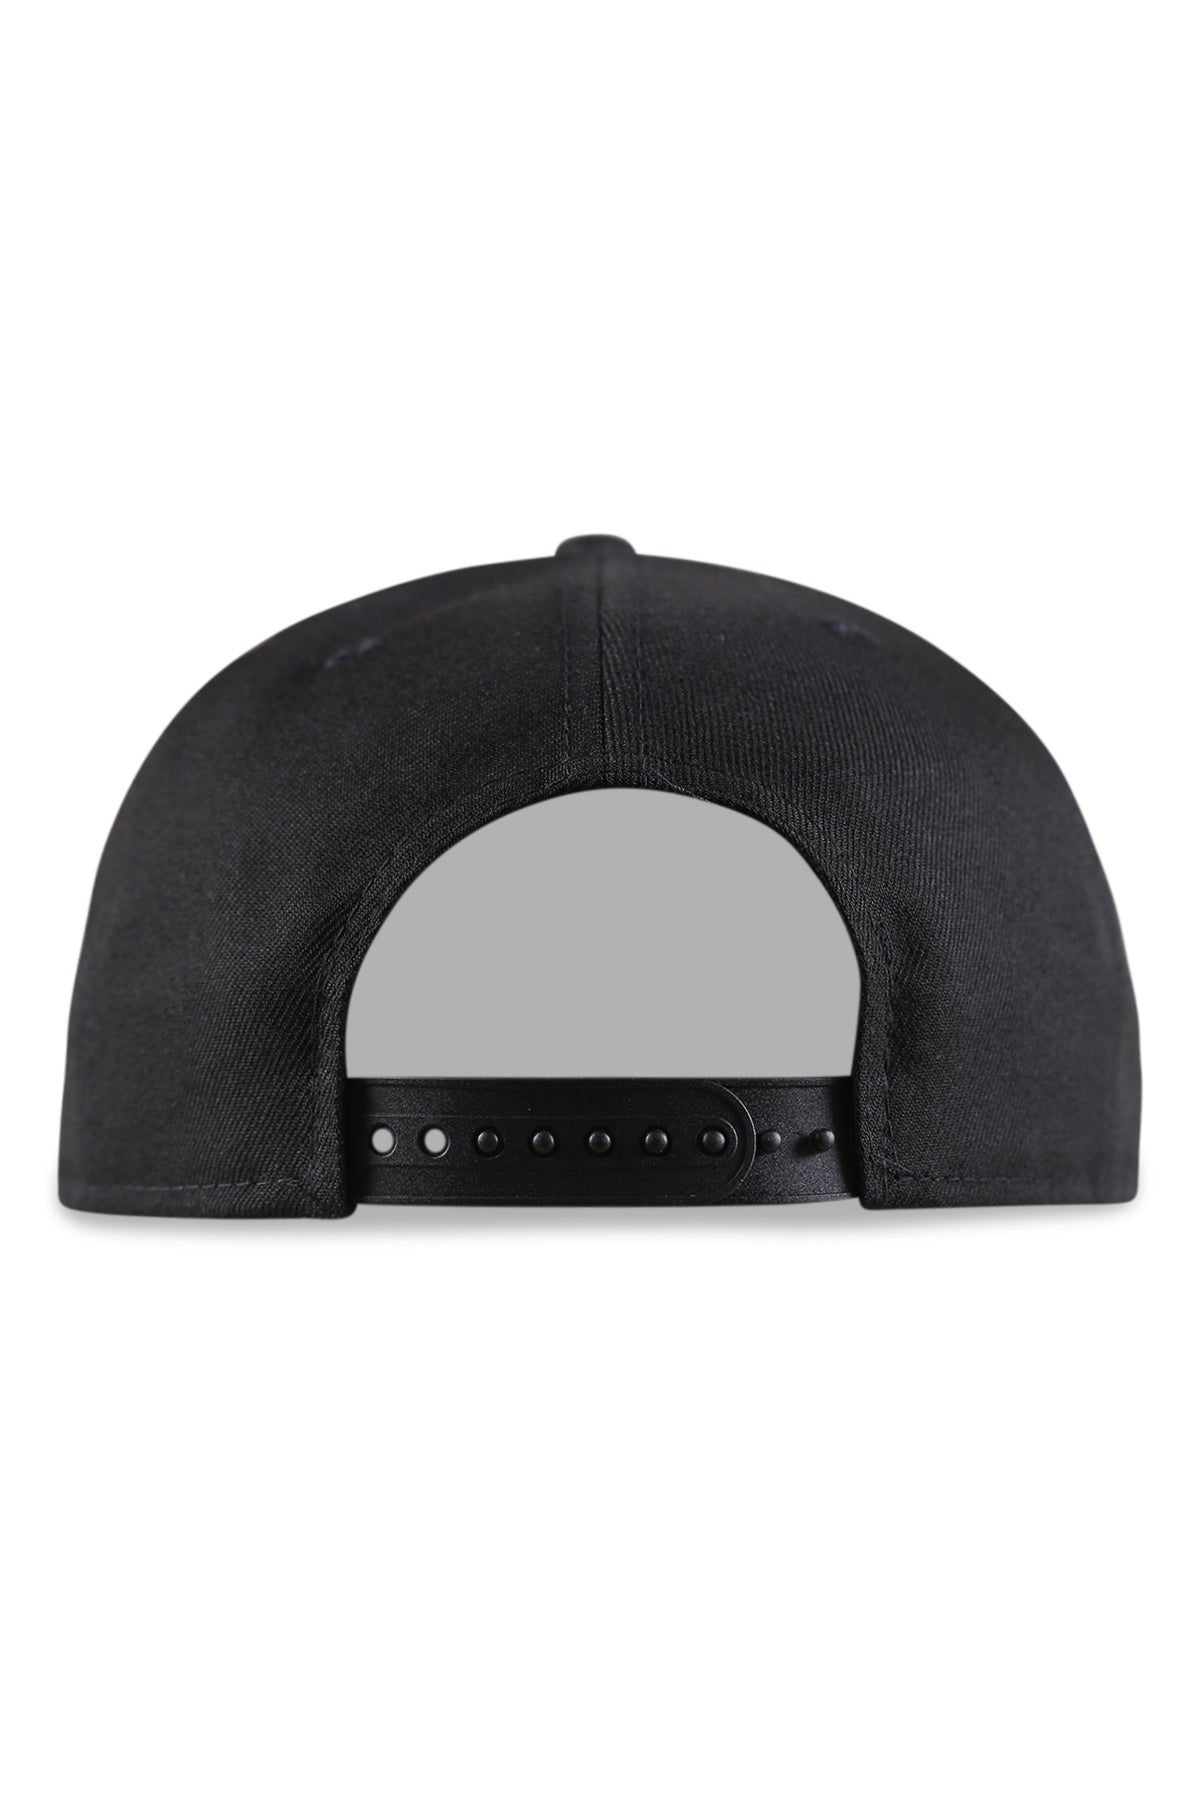 New Era 950 LV Raiders Black White Snapback